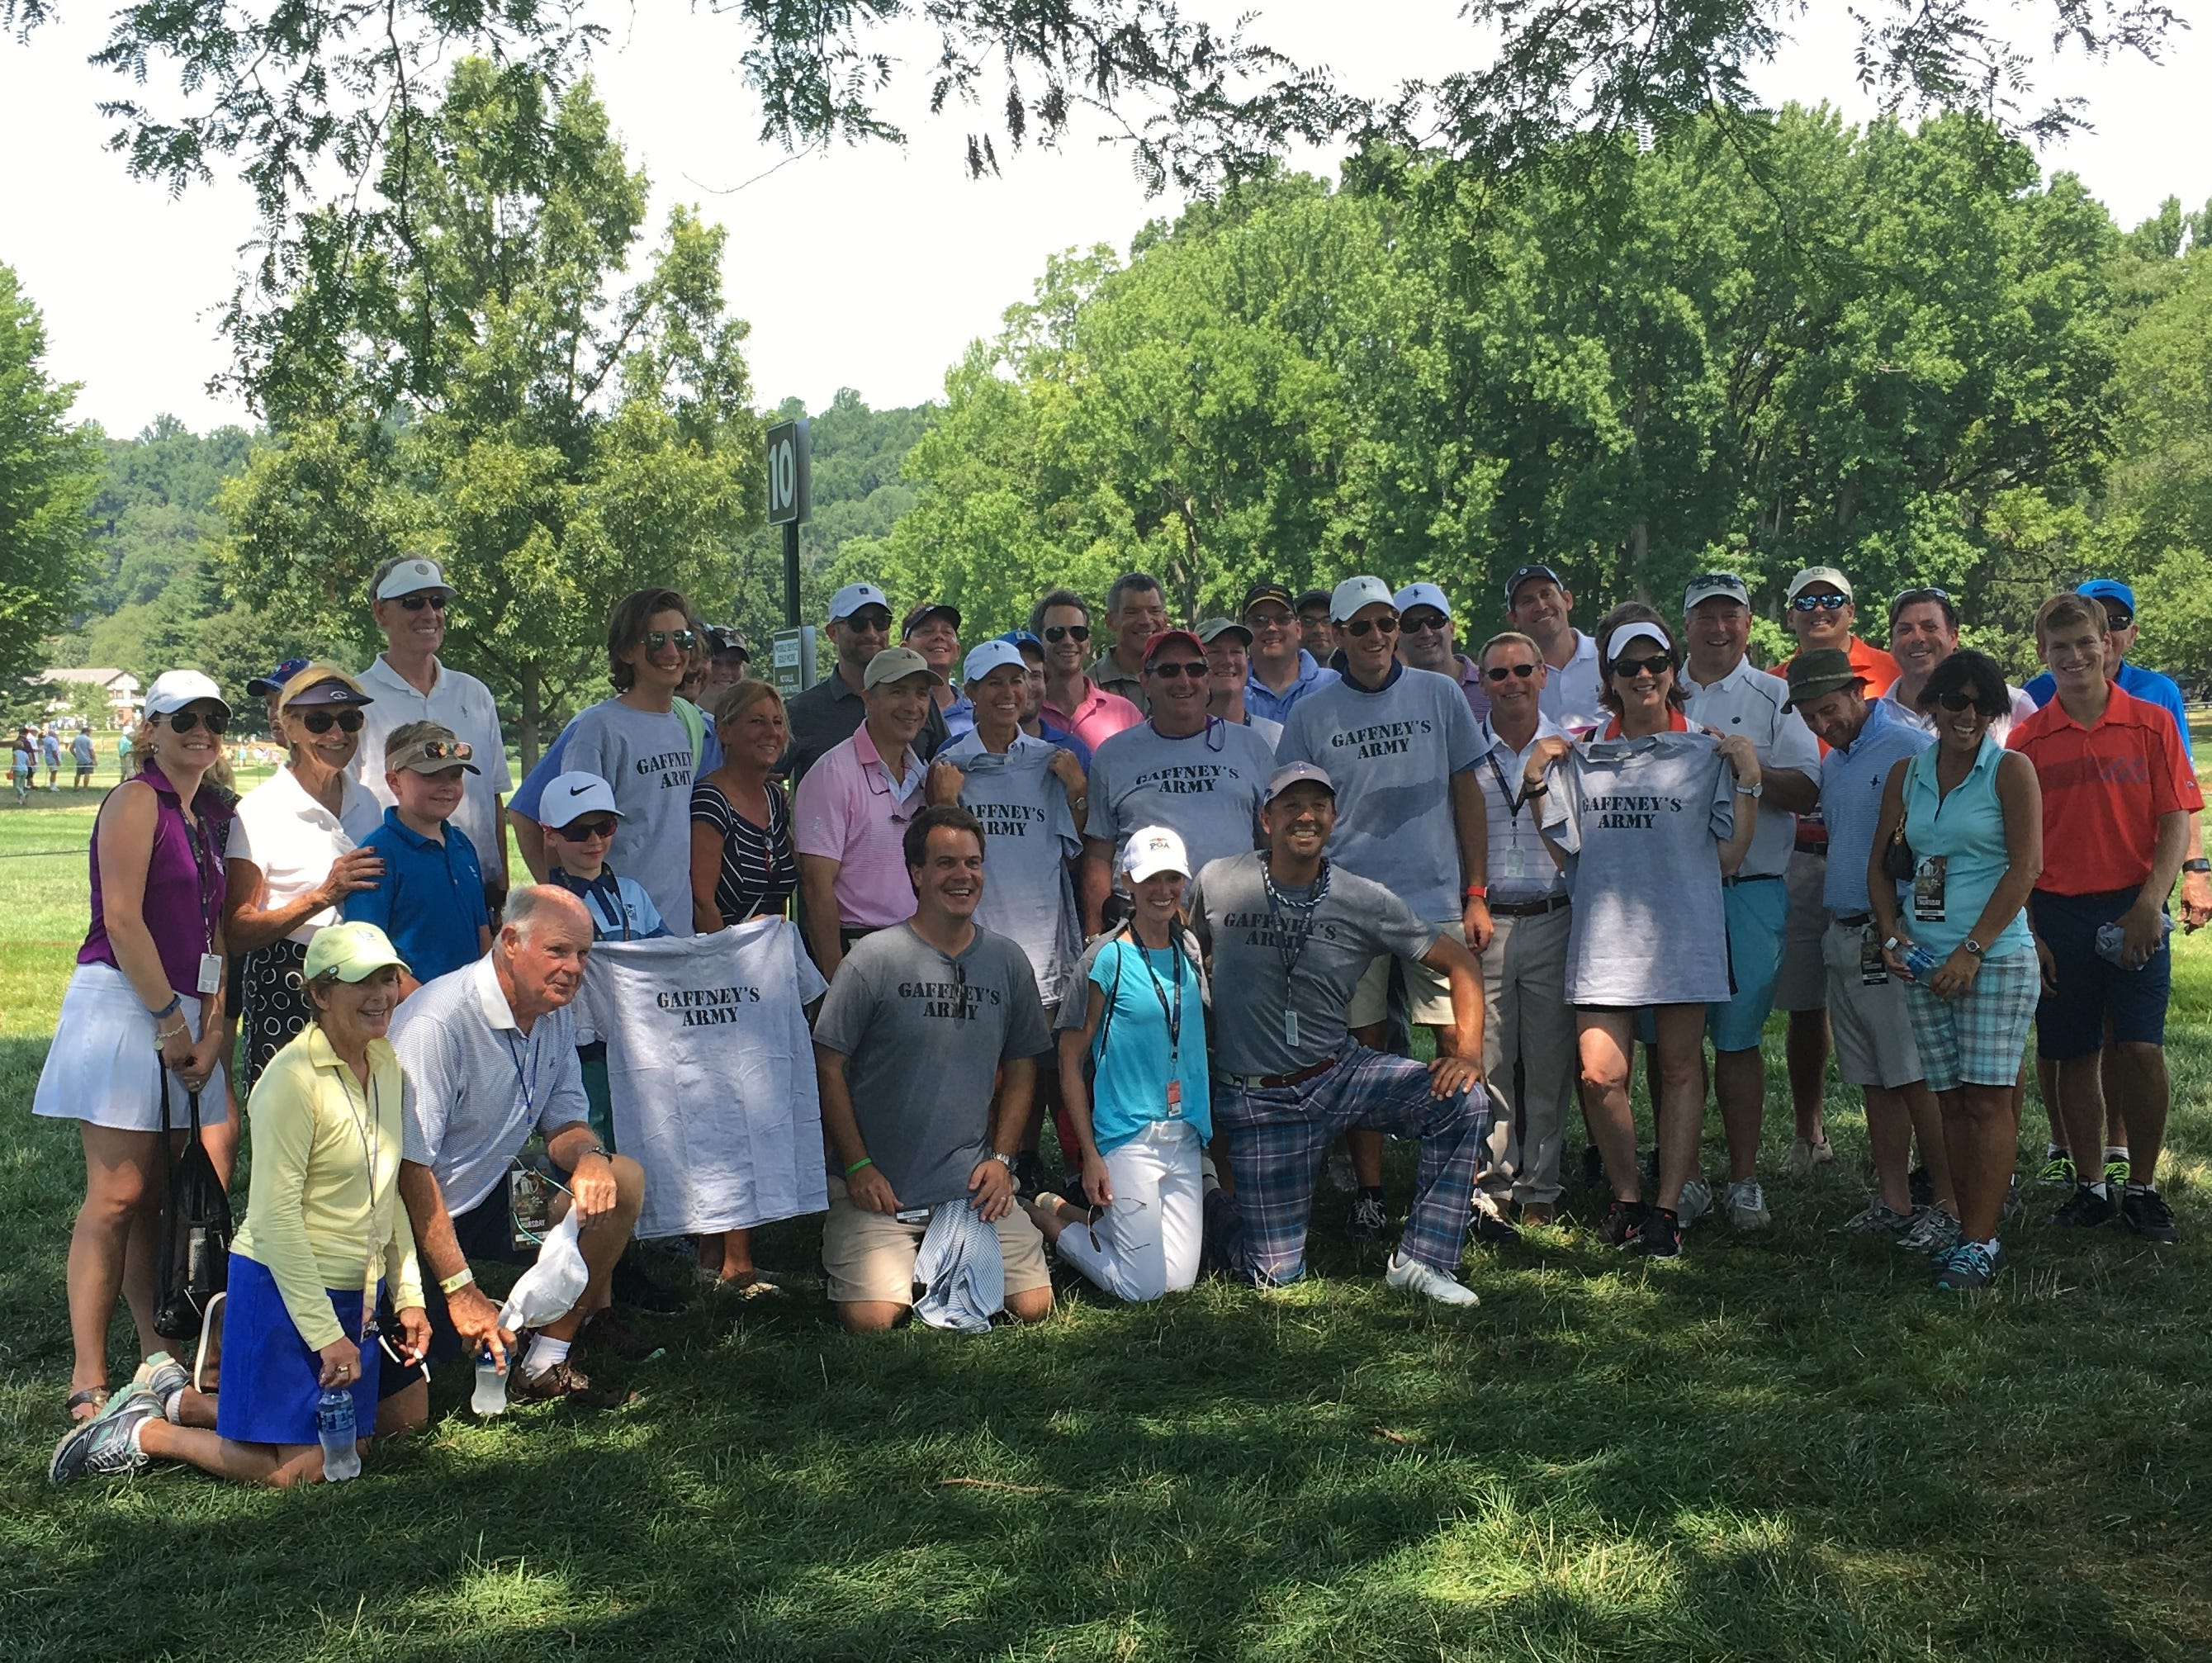 Thomas Pablo (center with plaid pants) originated Gaffney's Army last year at Whistling Straits and was back Thursday at Baltusrol with t-shirts for the nearly 40 friends and family members that came to watch the Quaker Ridge head professional compete in the 98th PGA Championship.